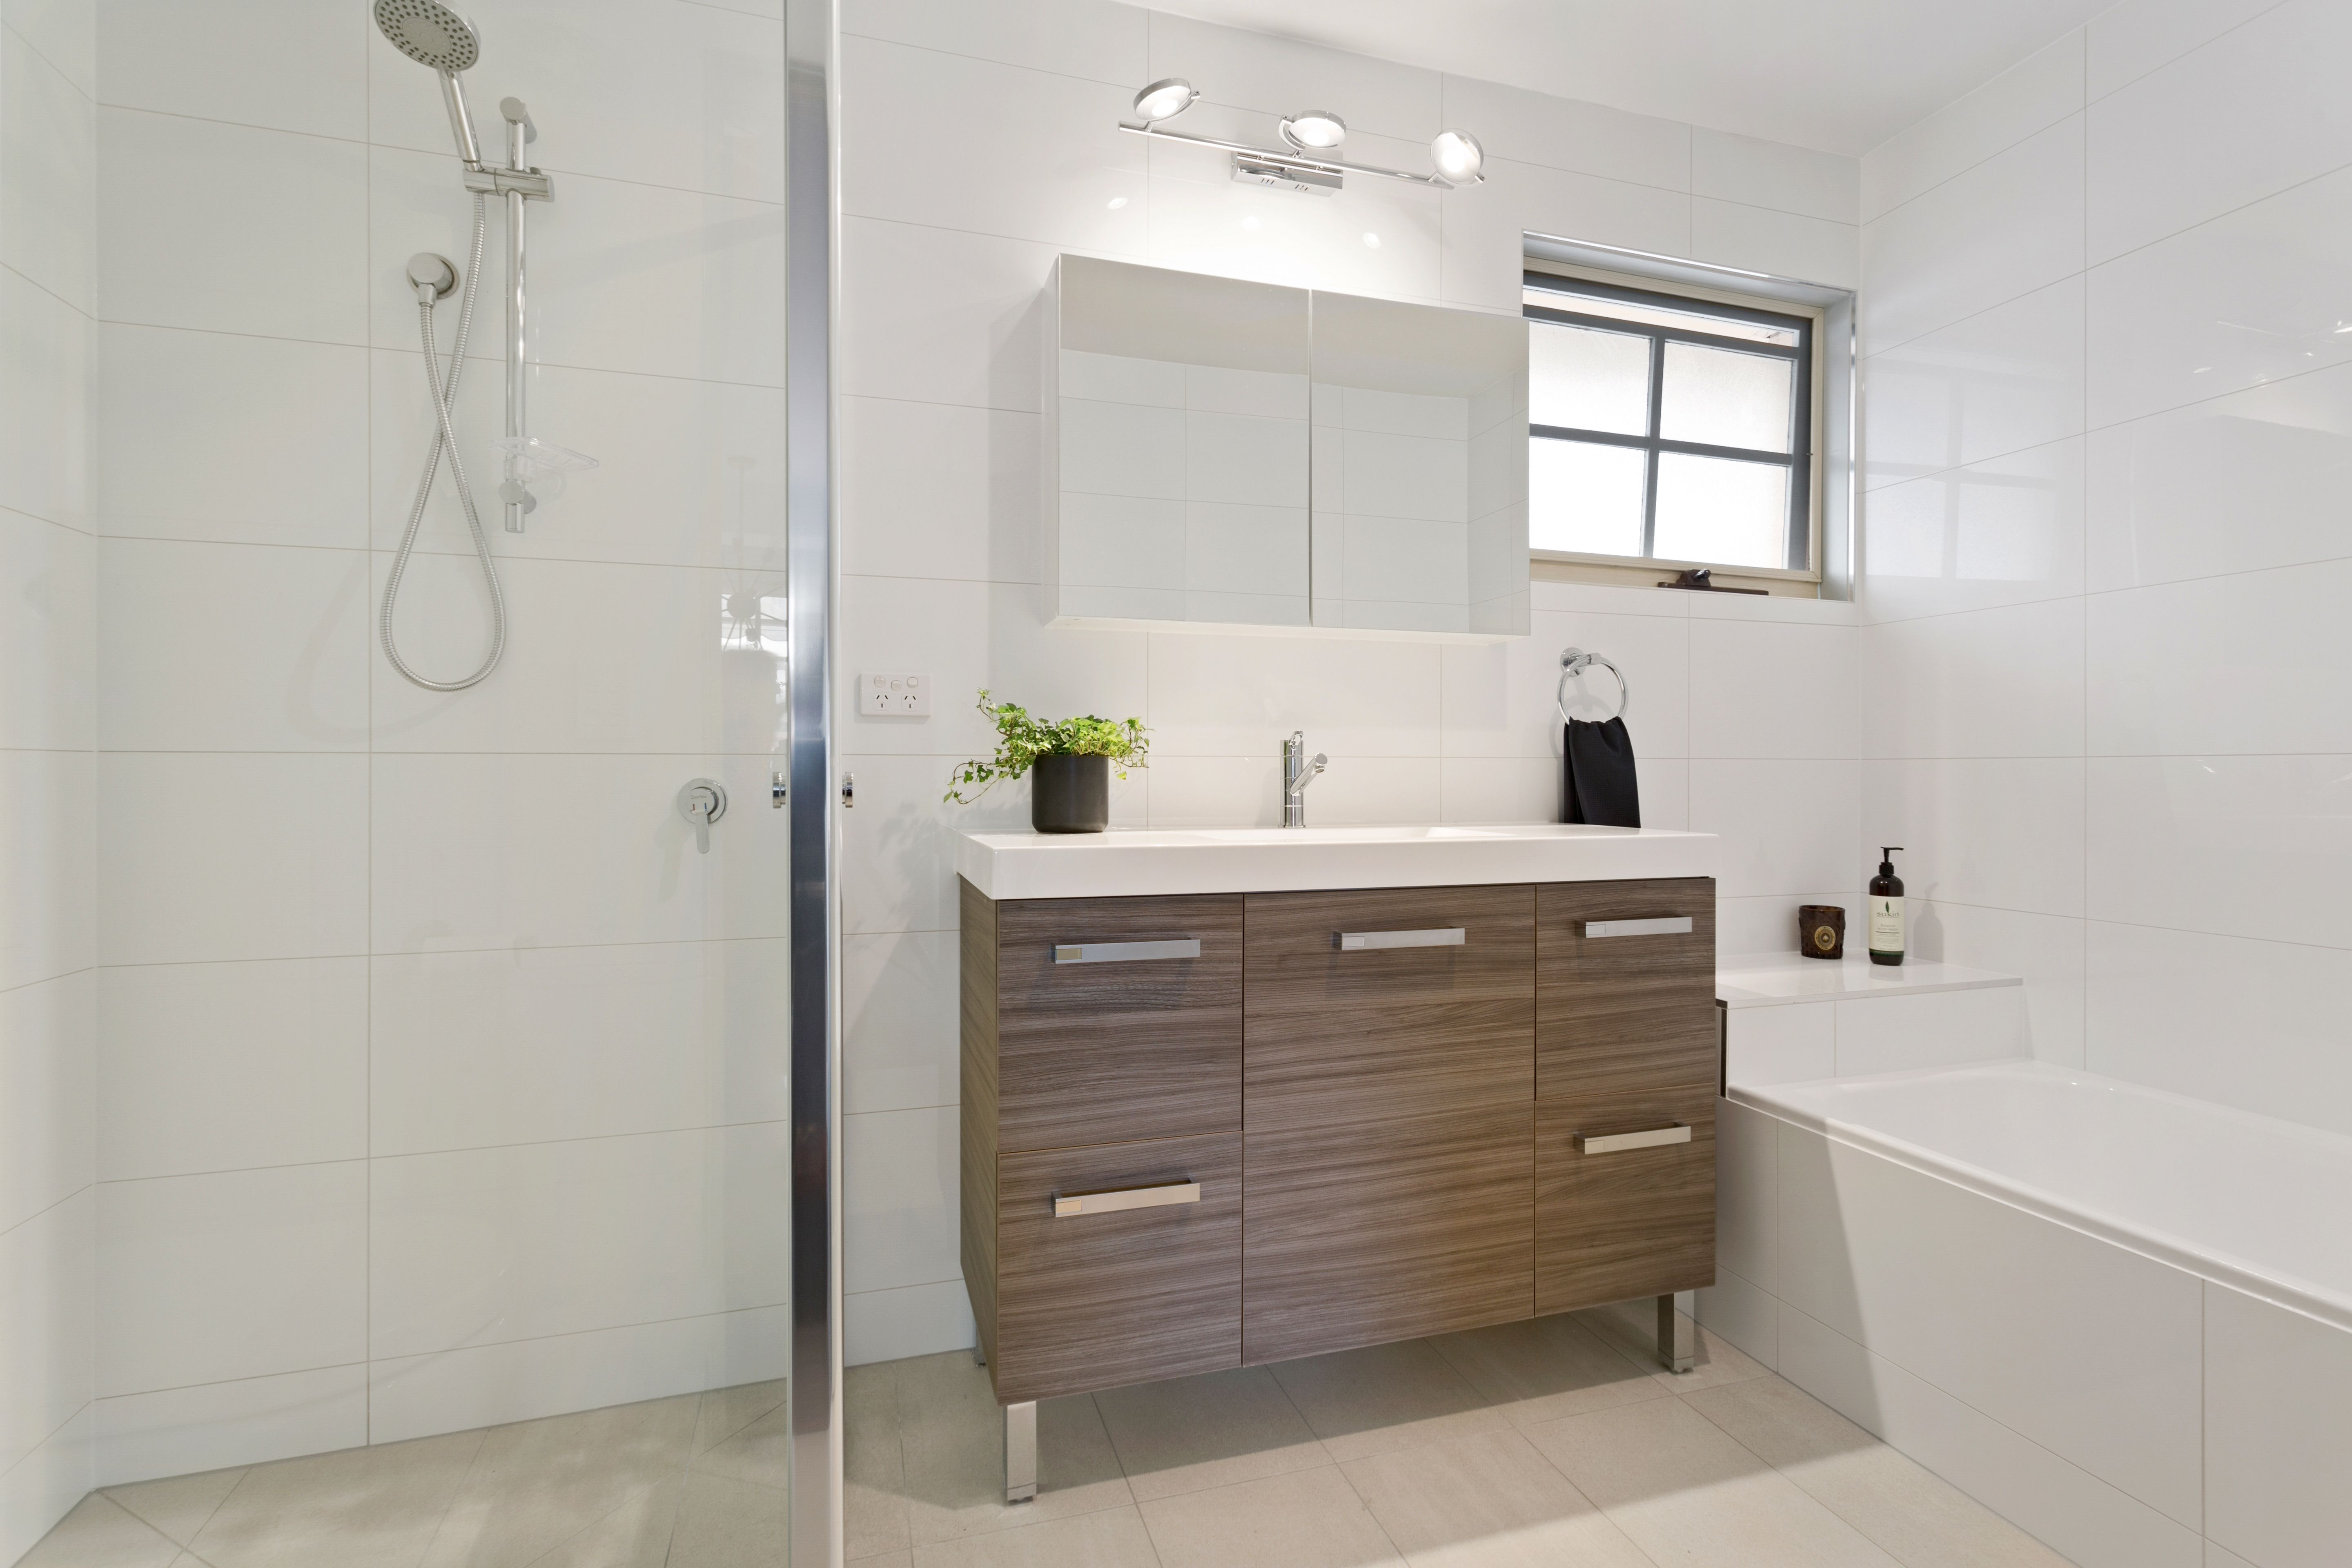 Bathroom Renovation By Urban Sensations #Bathroom #White #Neutral #Wood